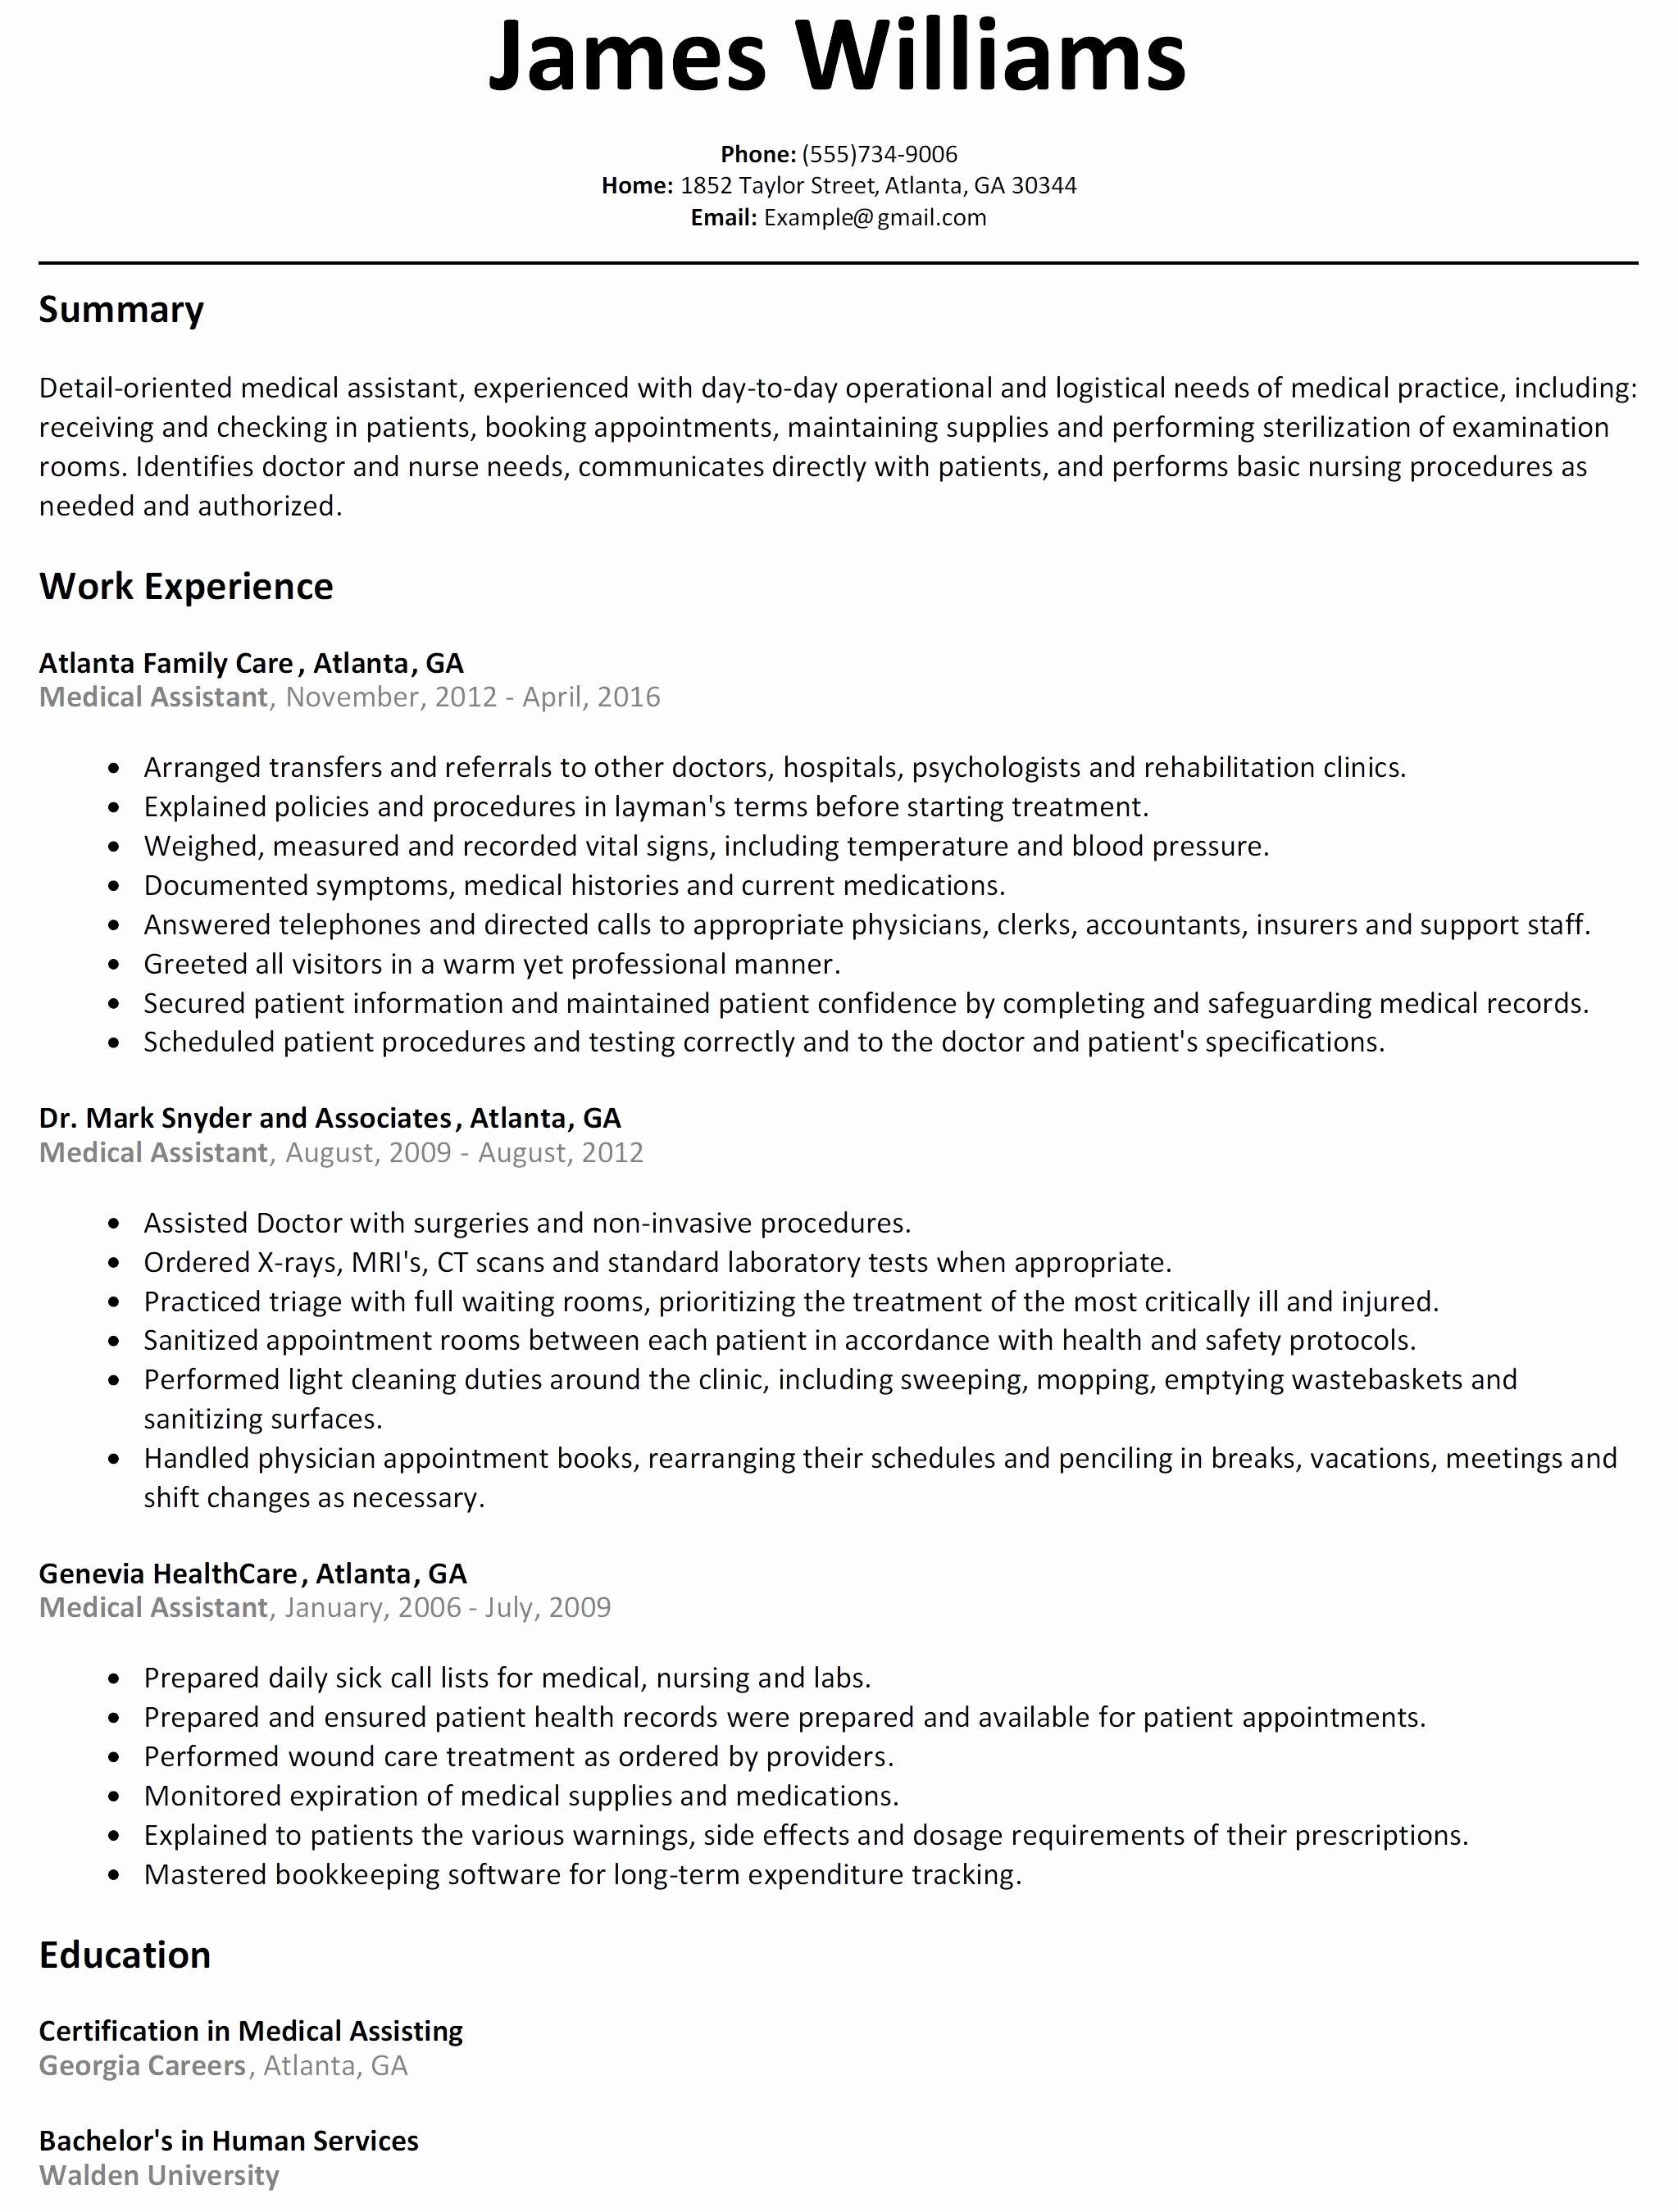 Recent Graduate Resume - Interesting Resume Luxury Beautiful American Resume Sample New